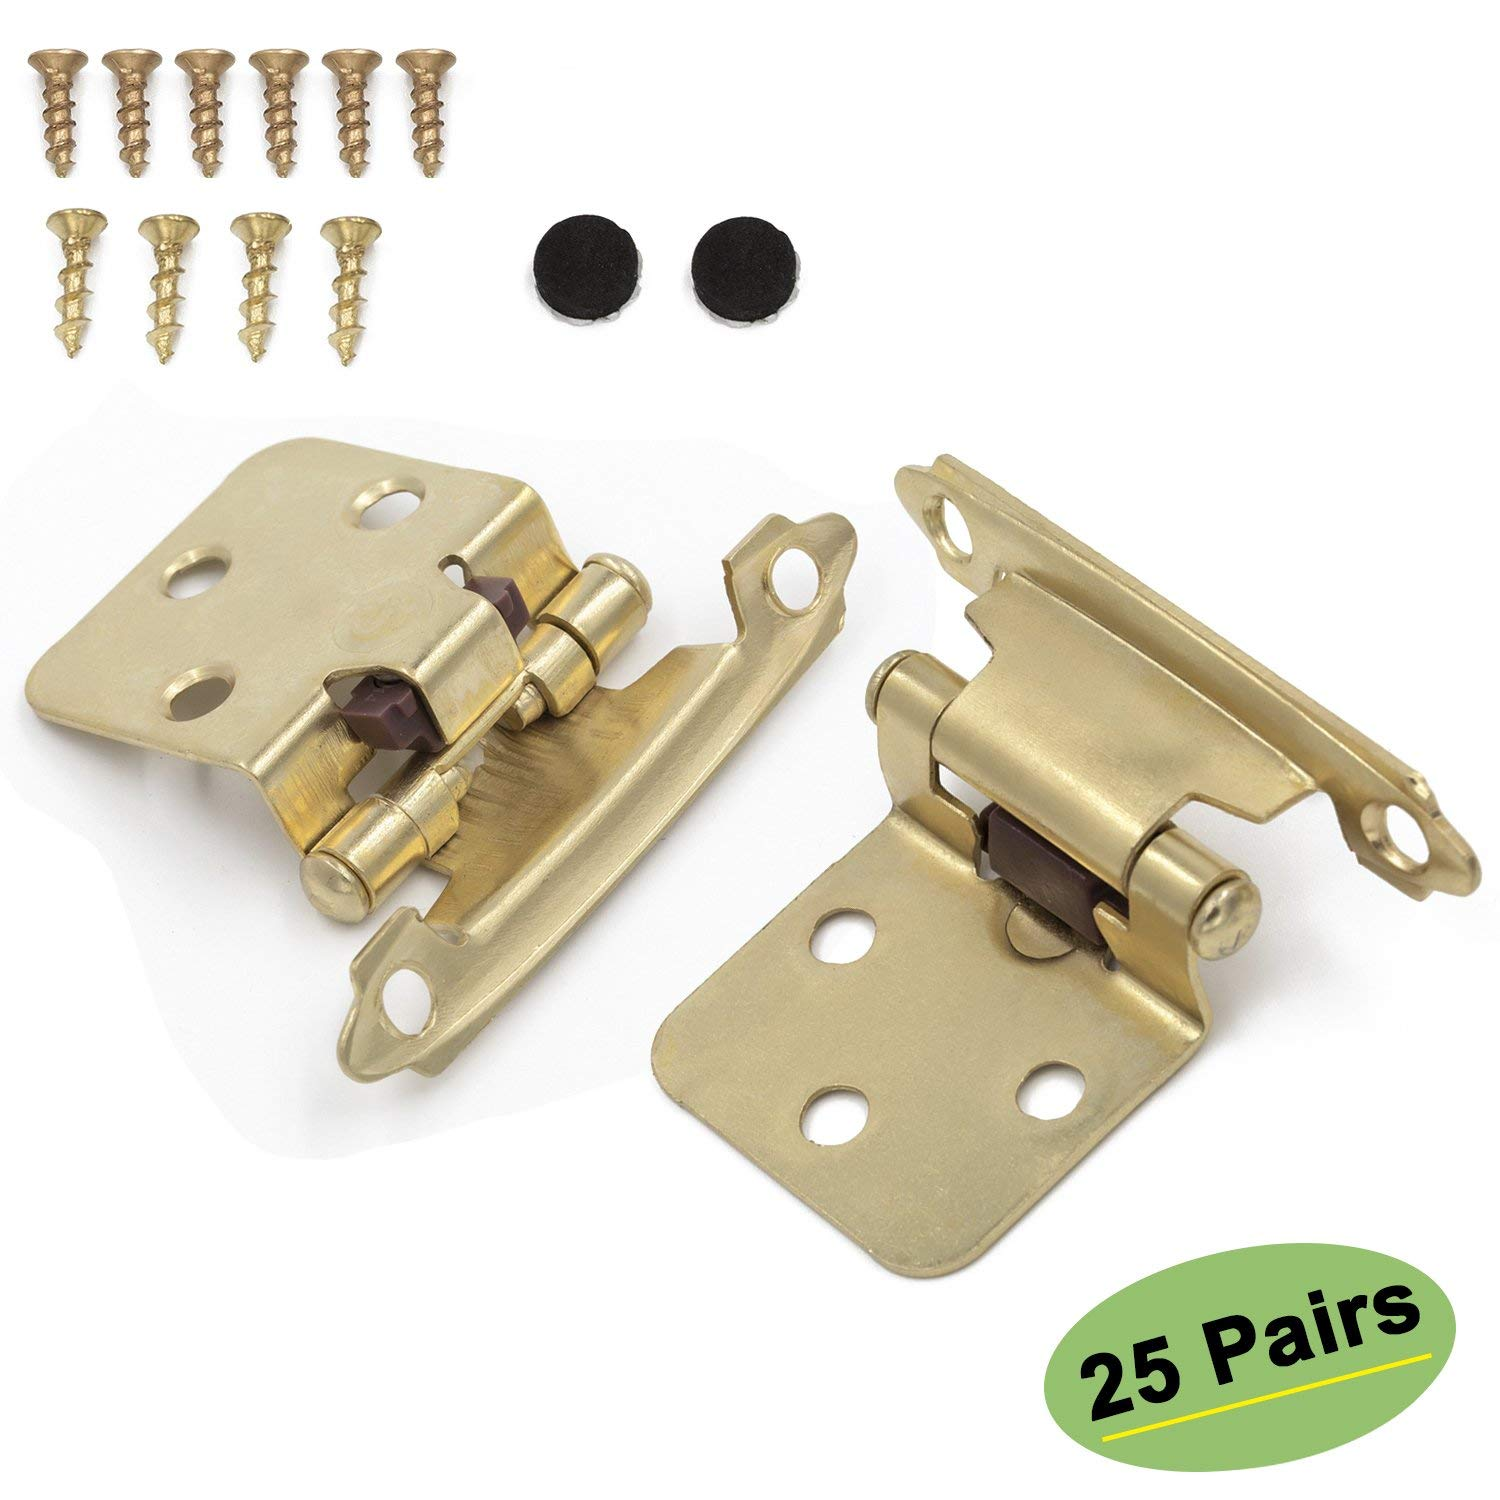 Cheap Install Hinges Cabinet Doors Find Install Hinges Cabinet Doors Deals On Line At Alibaba Com